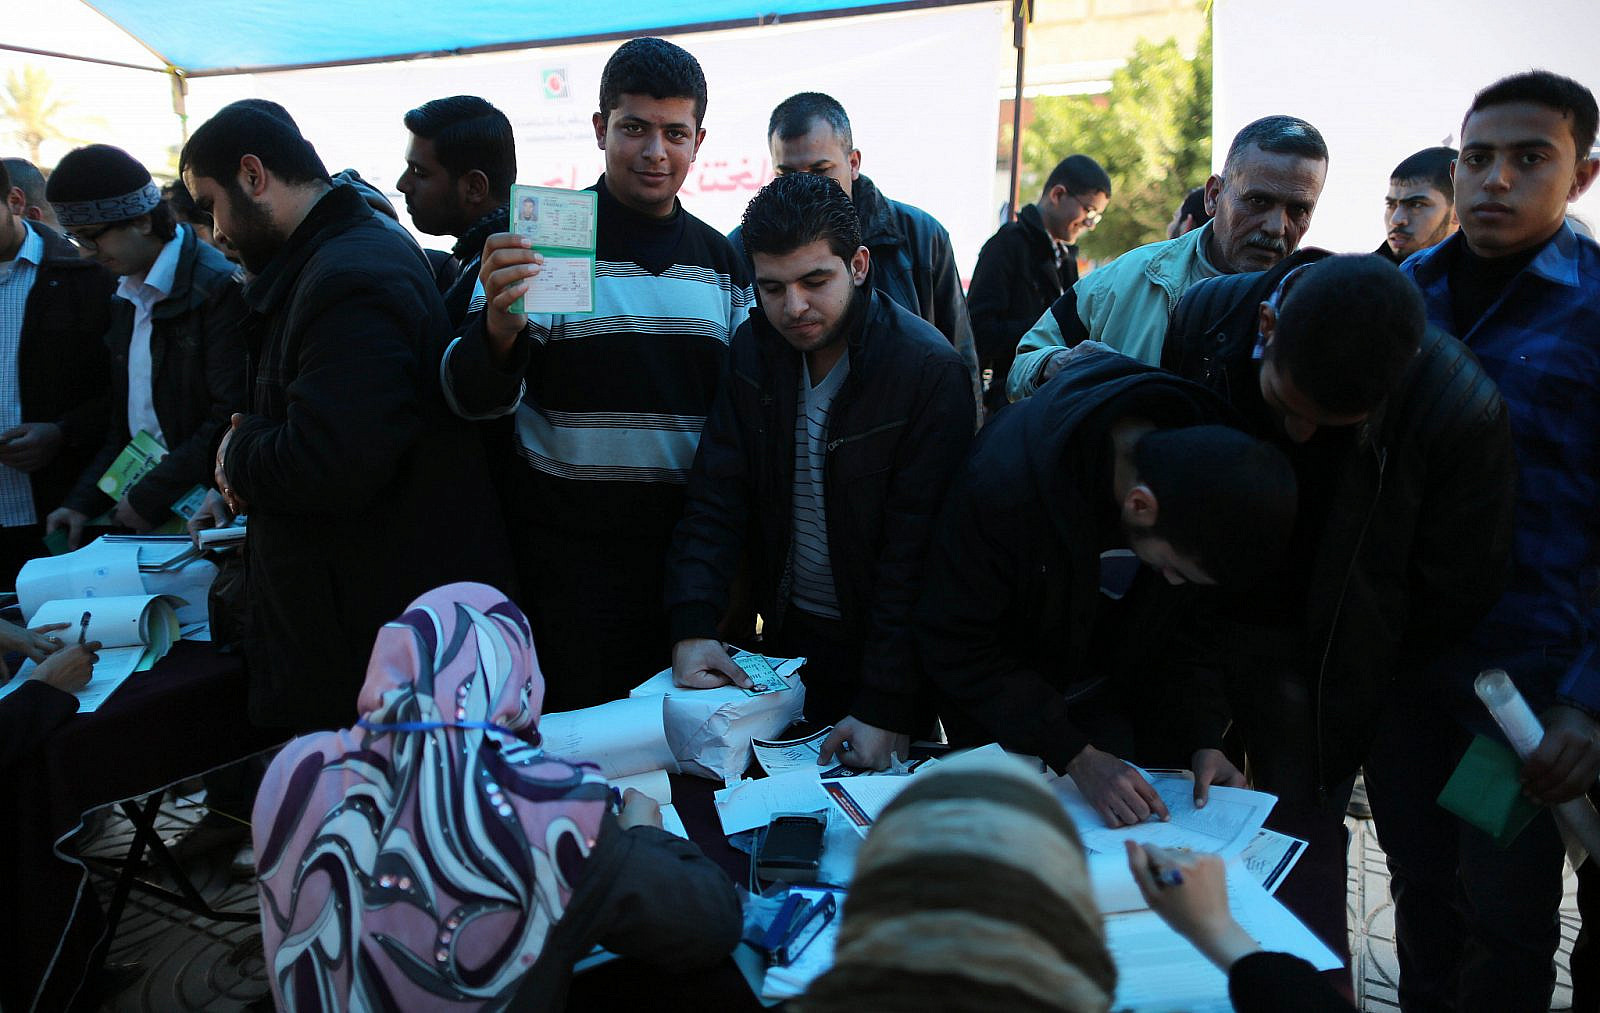 A Palestinian Central Election employee checks a voter card at a Central Election Commission office in Gaza City, February 11, 2013. (Wissam Nassar/Flash90)